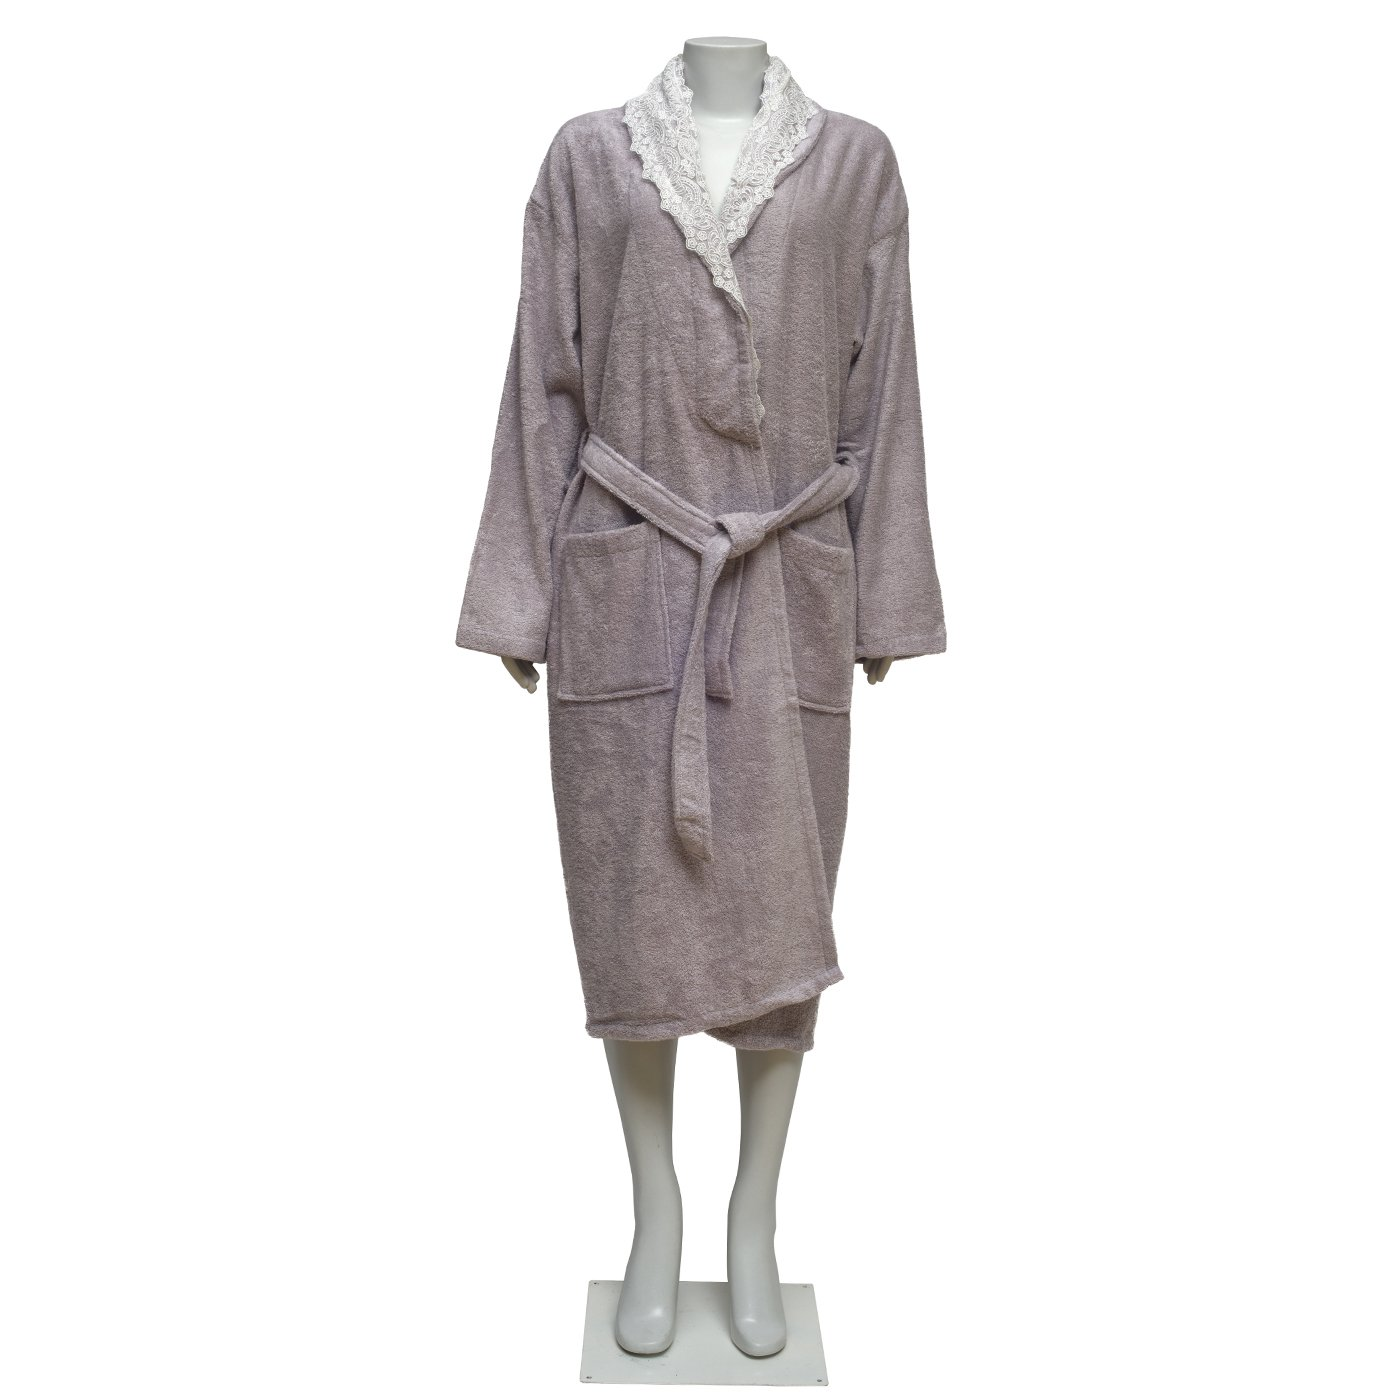 100% Turkish Cotton Extra Plush Bamboo Bathrobe Set with Embroidery Lace, Large Bath Towel, Hair Towel Unisex Terry Bathrobe Set - Moisture Wicking and Odor Resistant (Light Coffee) (Lilac)